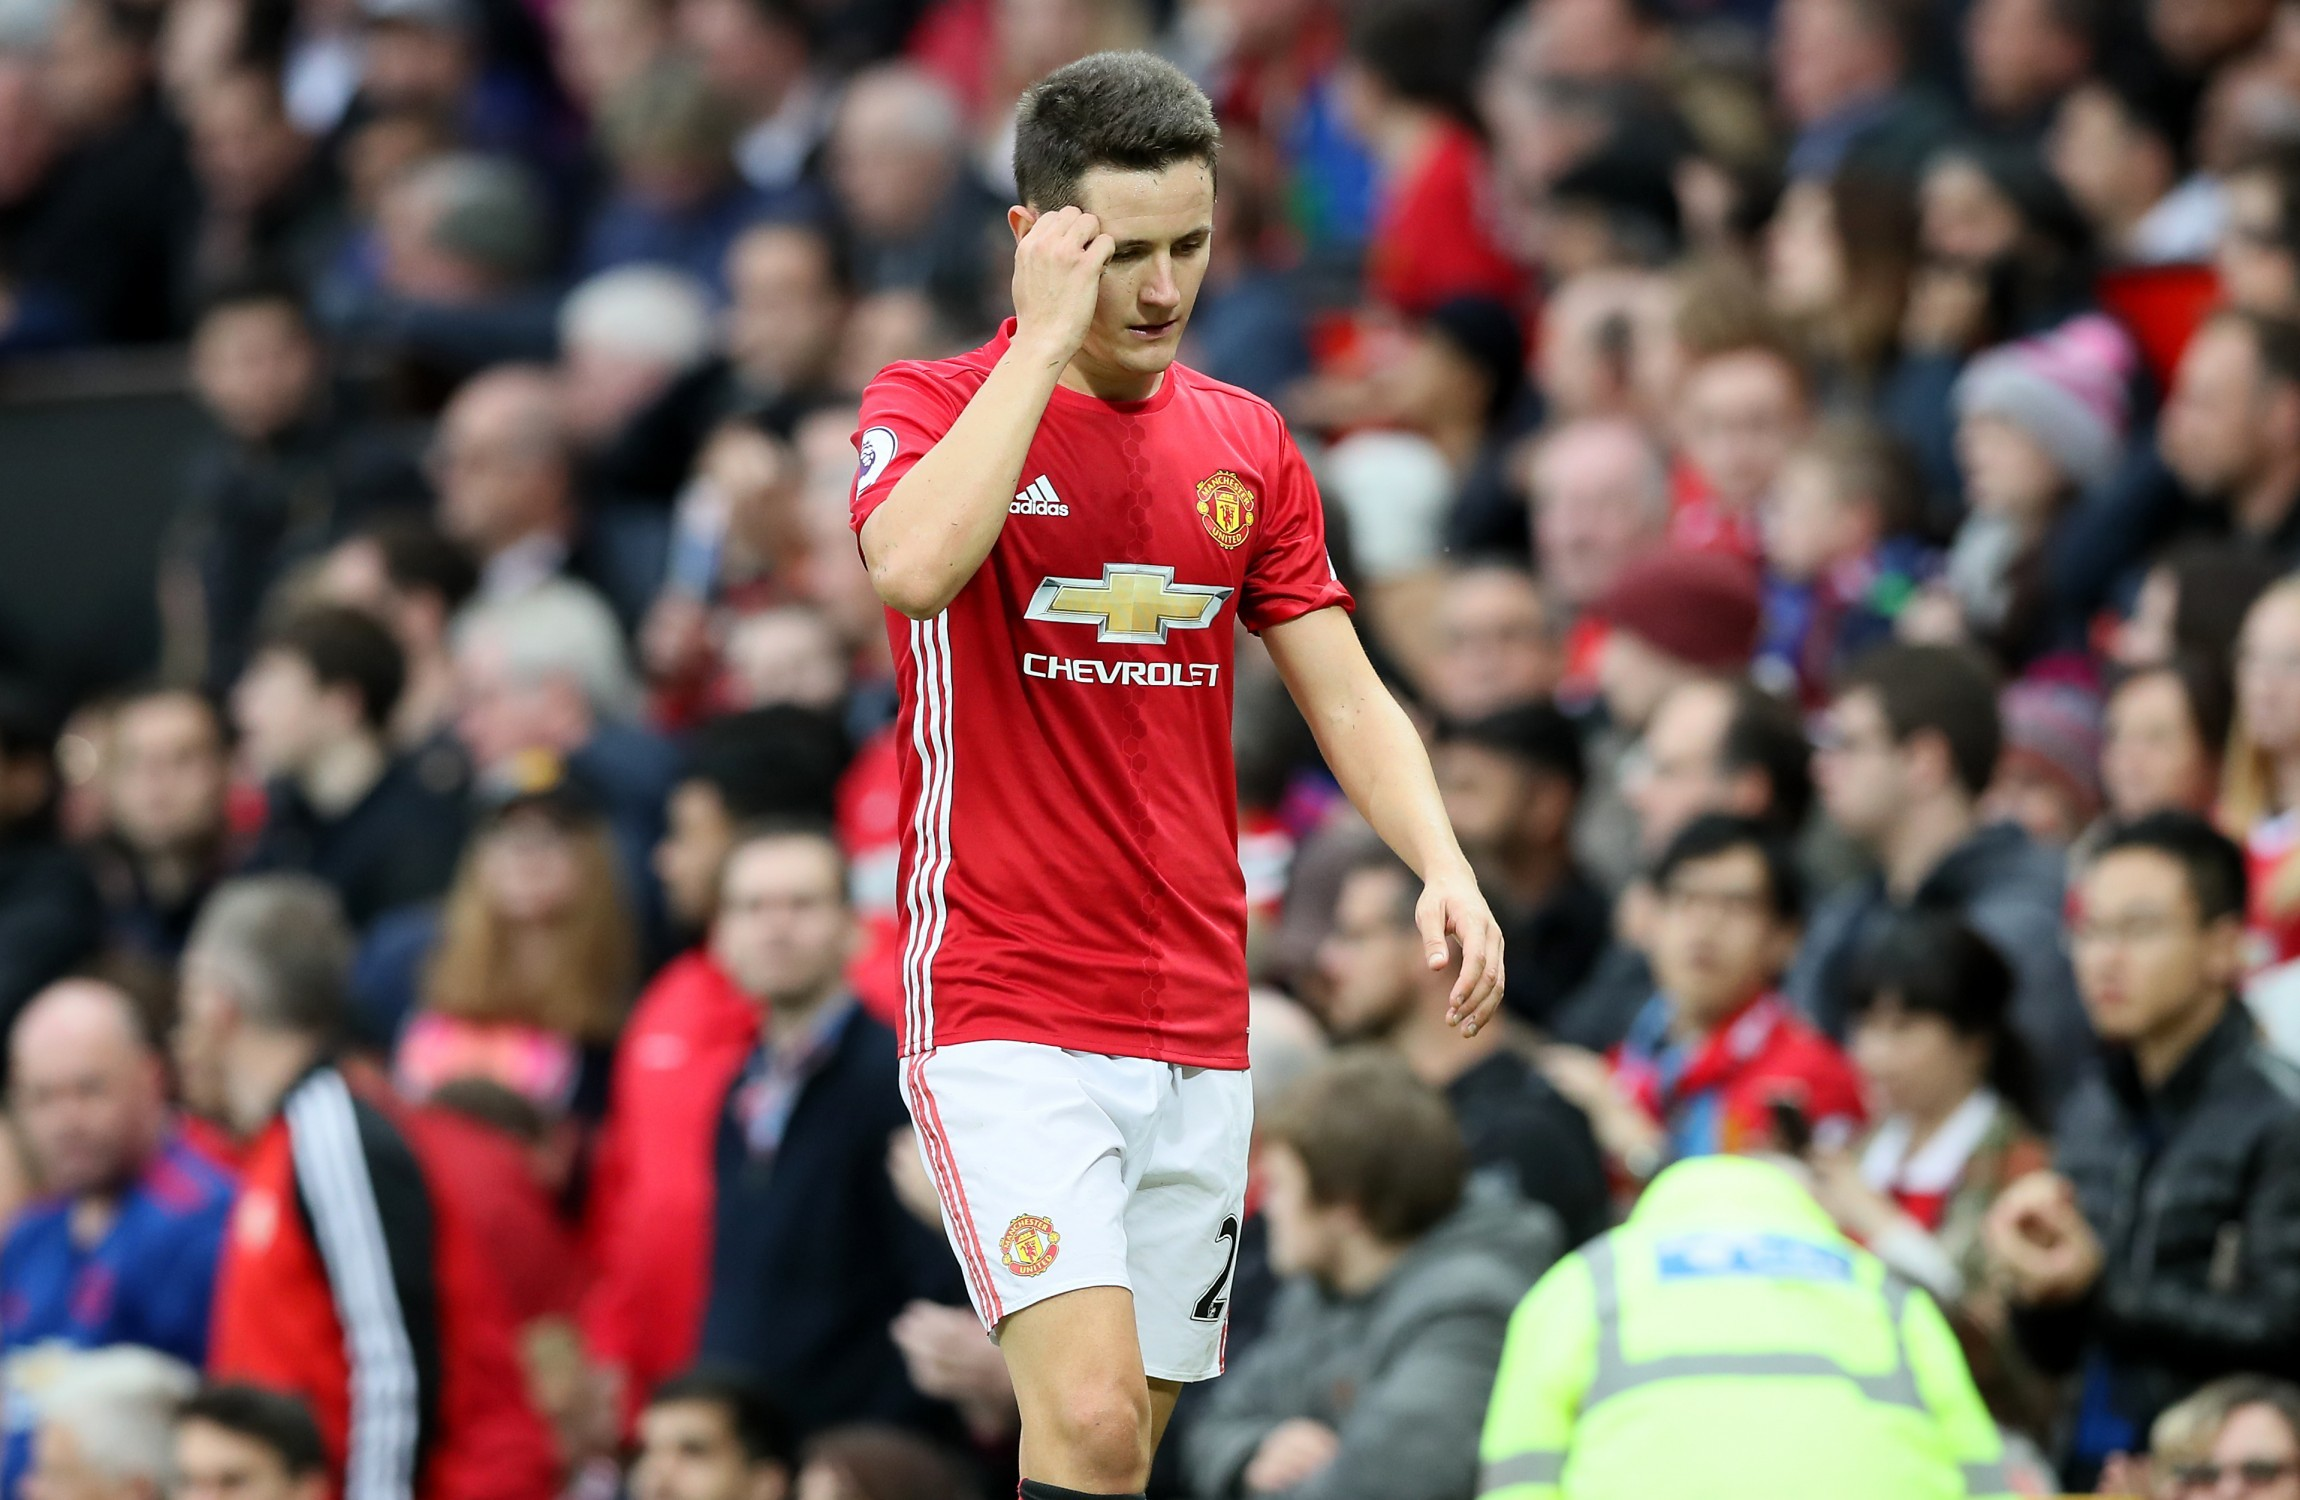 Ibrahimovic is privileged physically - Herrera